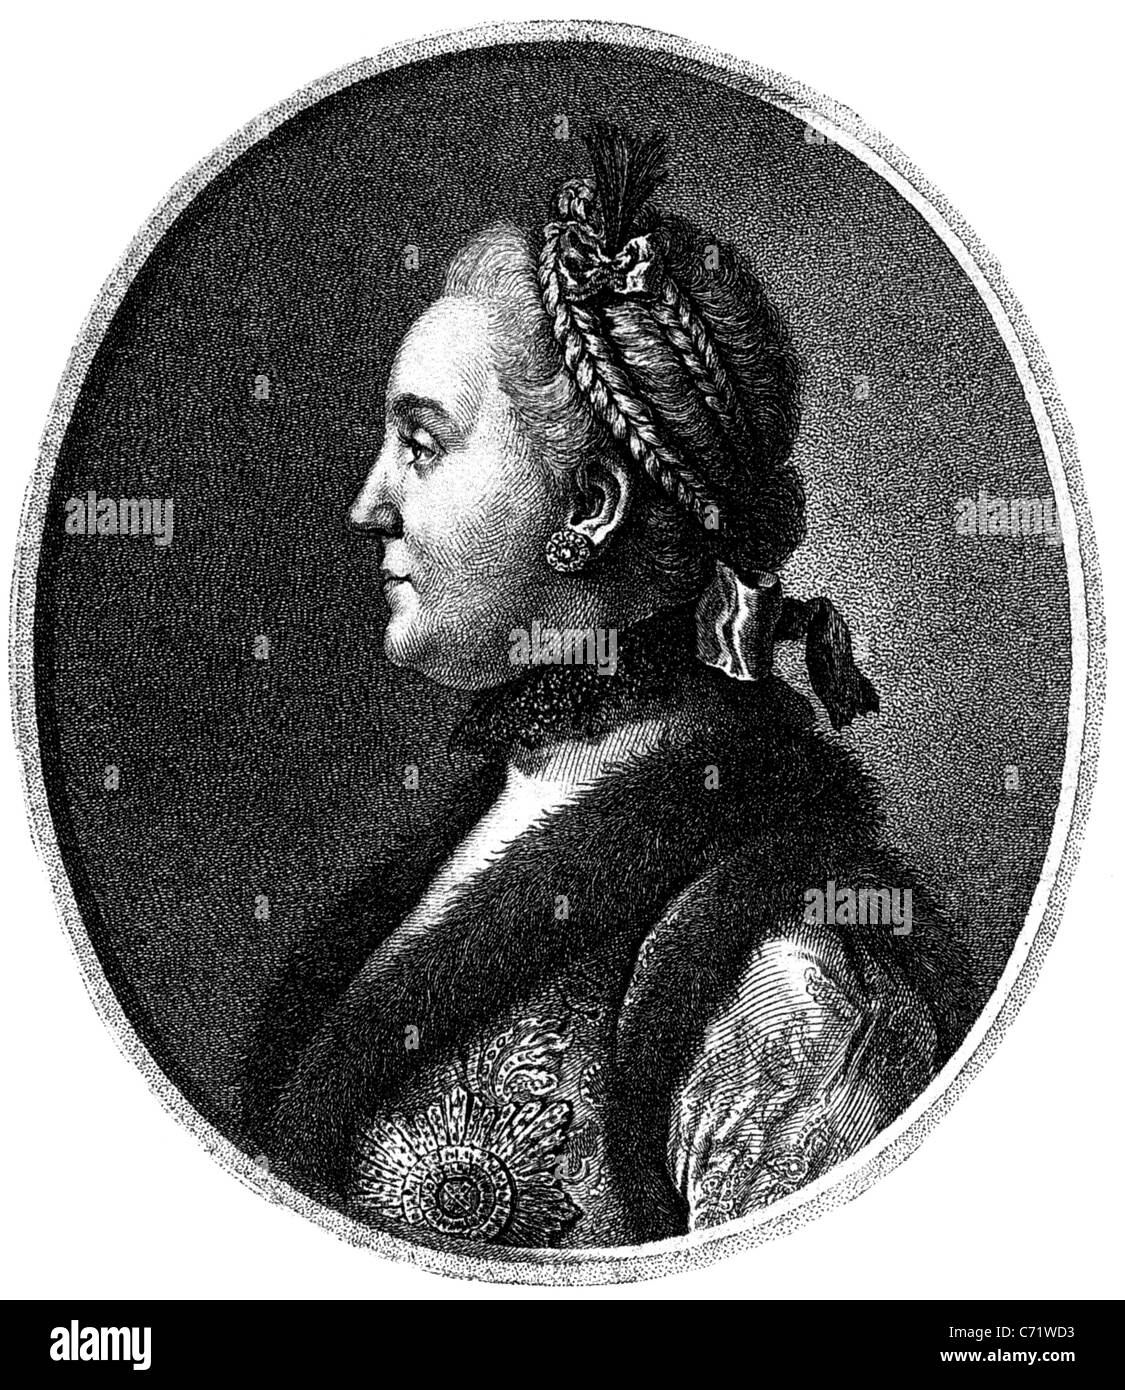 CATHERINE THE GREAT (1729-1796) Empress of Russia - Stock Image